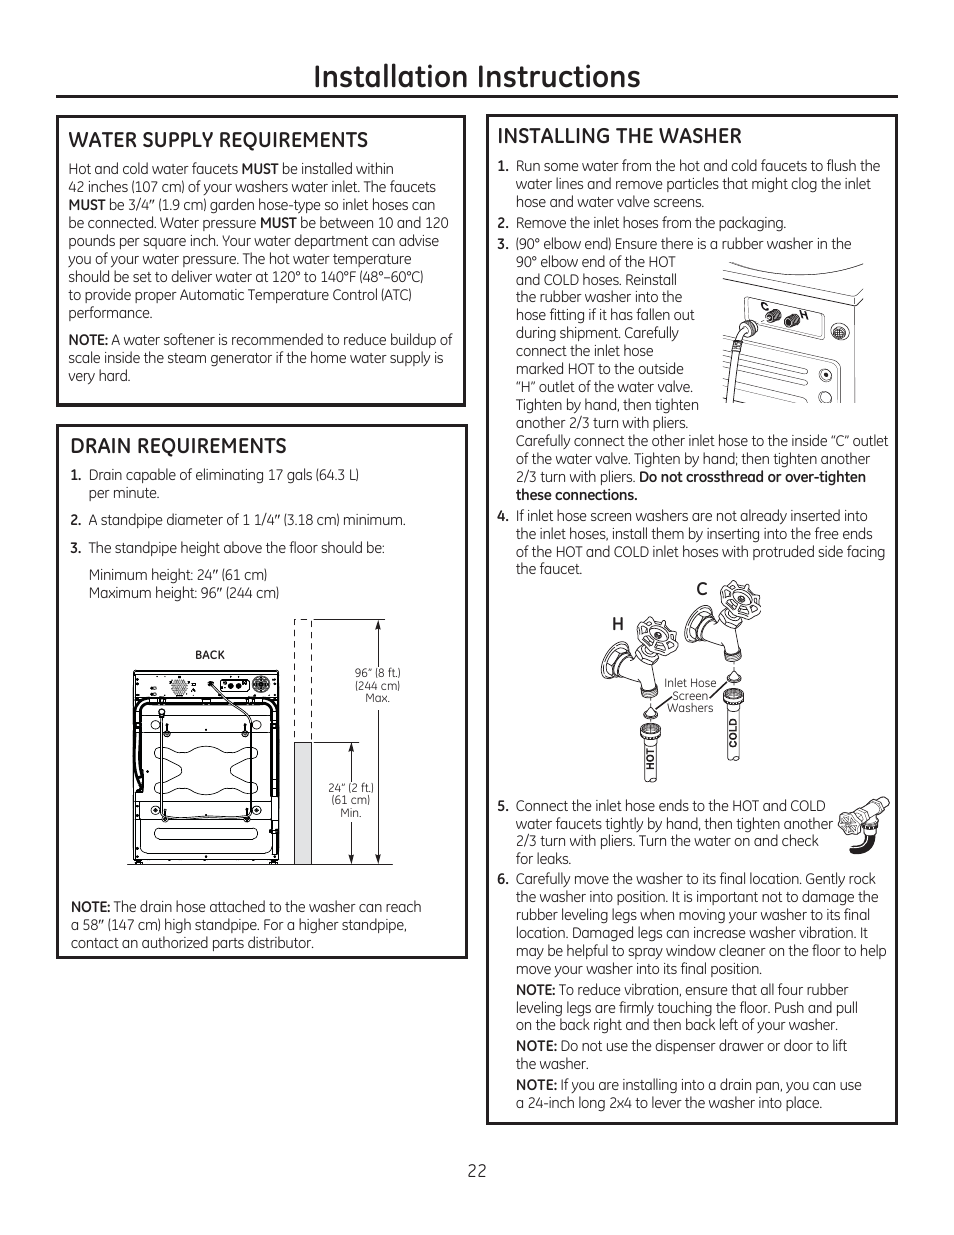 Sink U0026 Drain Plumbing Manual Guide